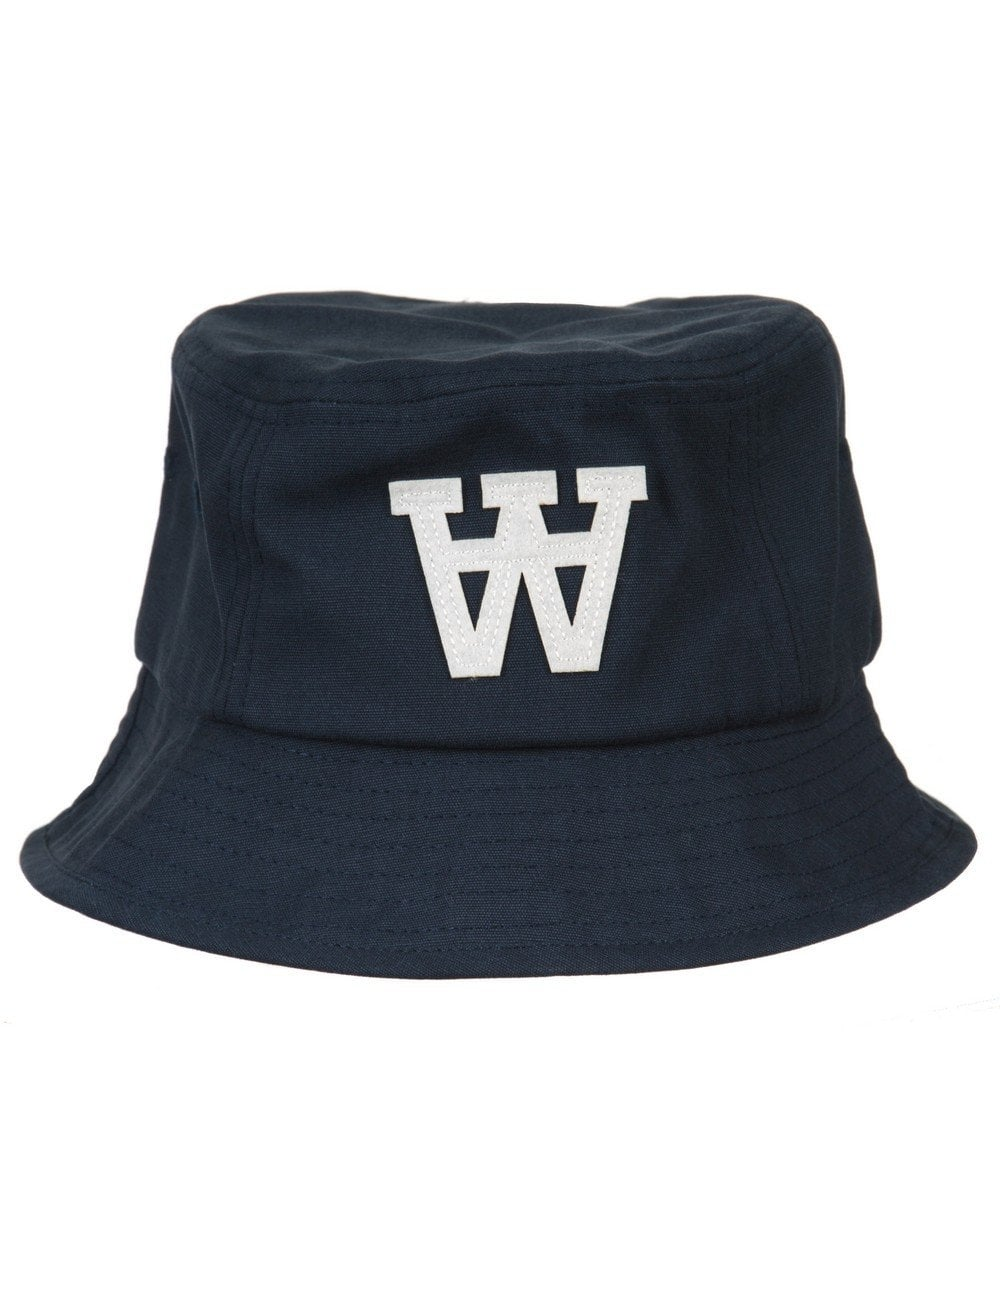 Wood Wood AA Bucket Hat - Navy Blue - Accessories from Fat Buddha ... 78d46816bab